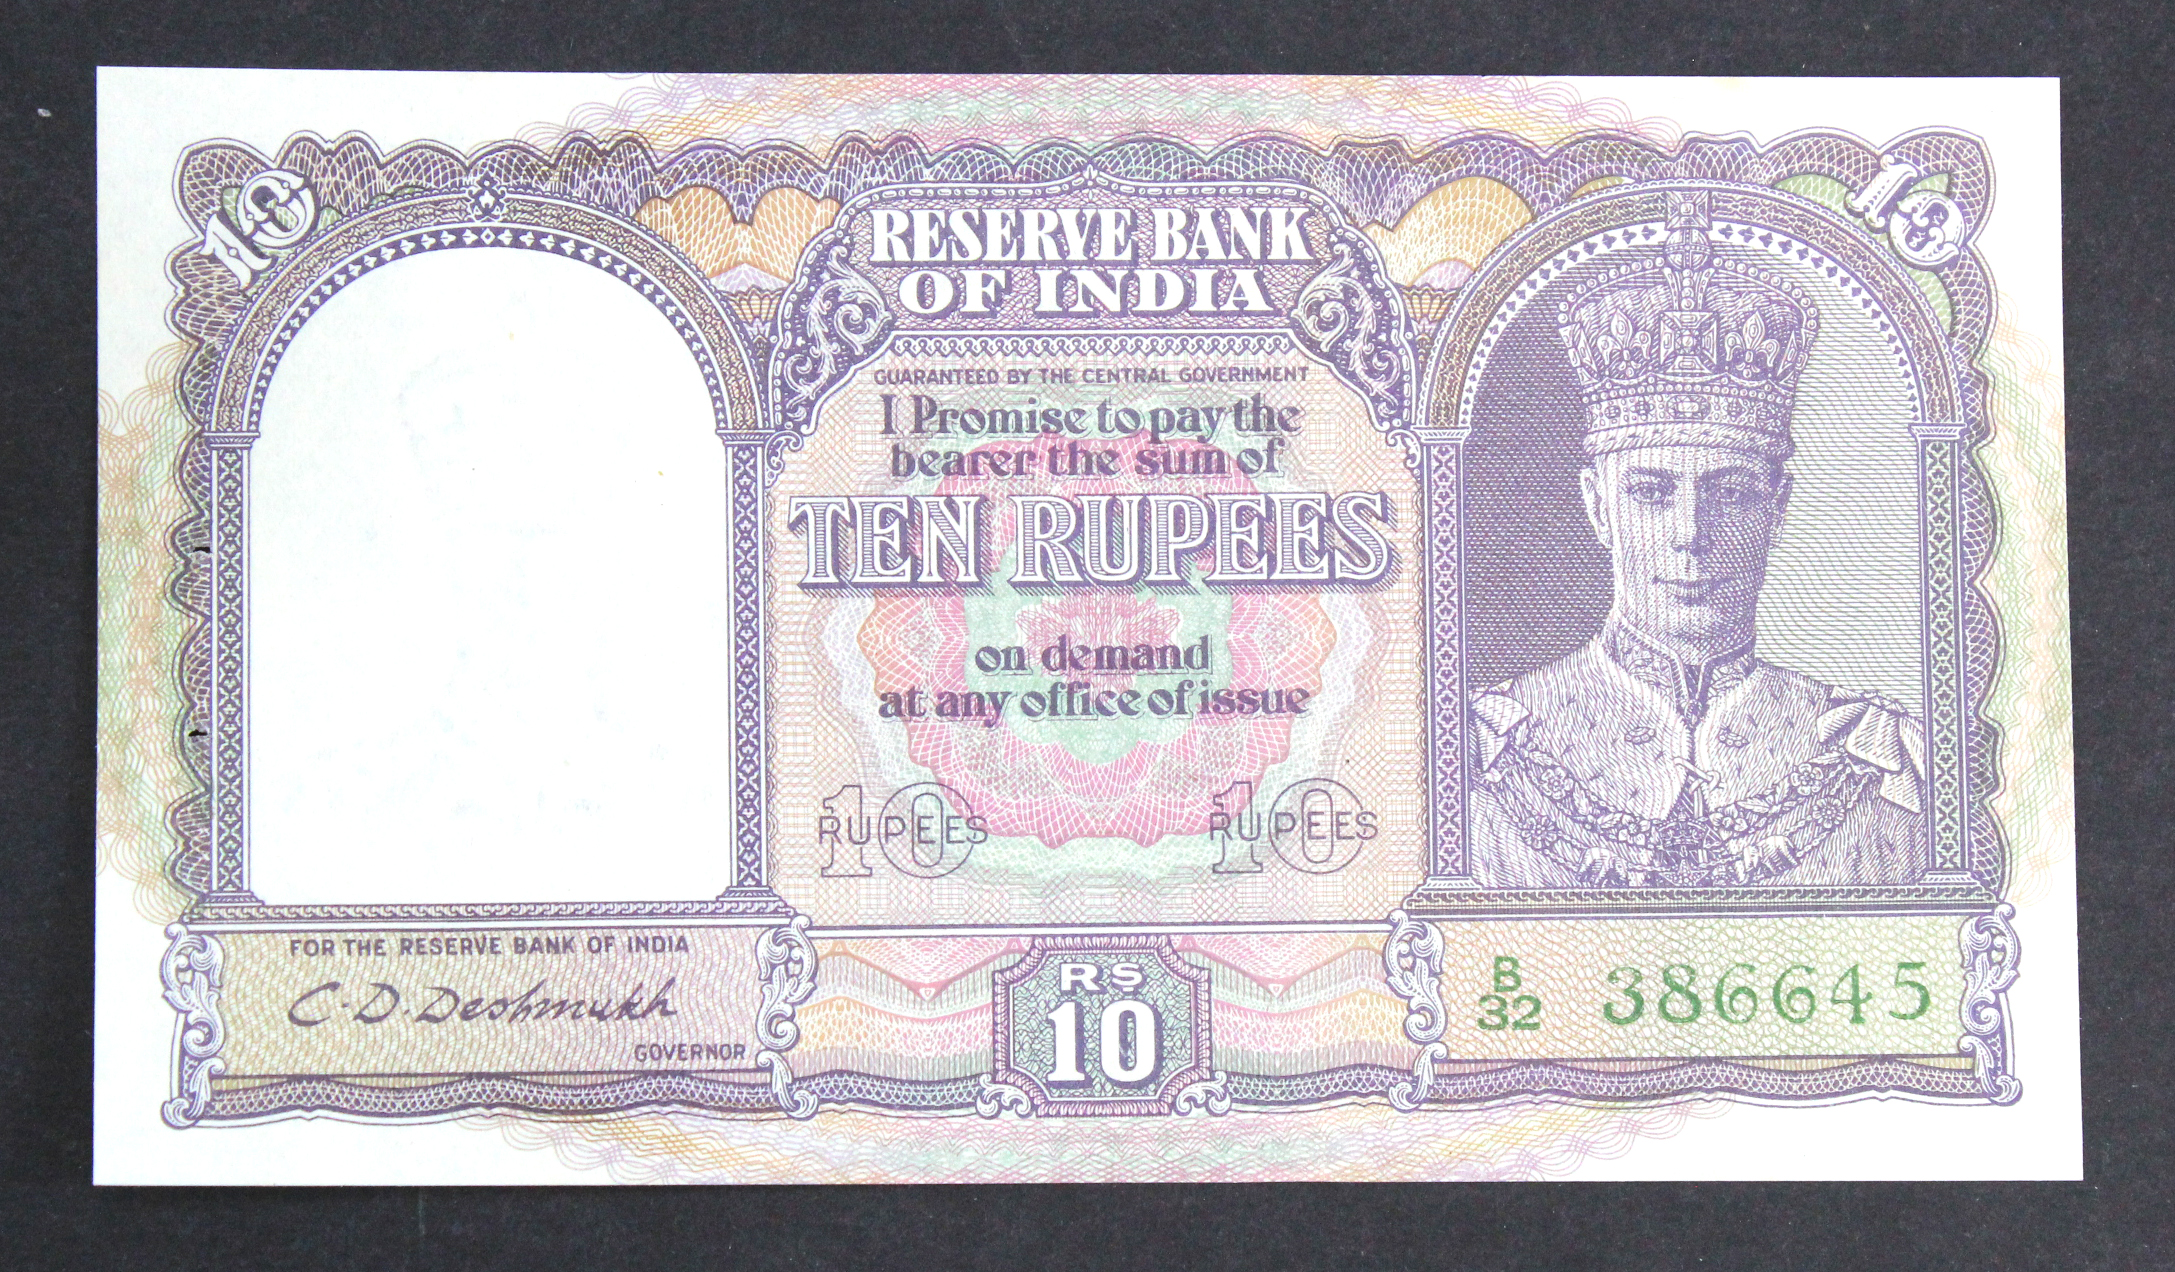 India 10 Rupees issued 1943, King George VI portrait at right, signed C.D. Deshmukh, serial B/32